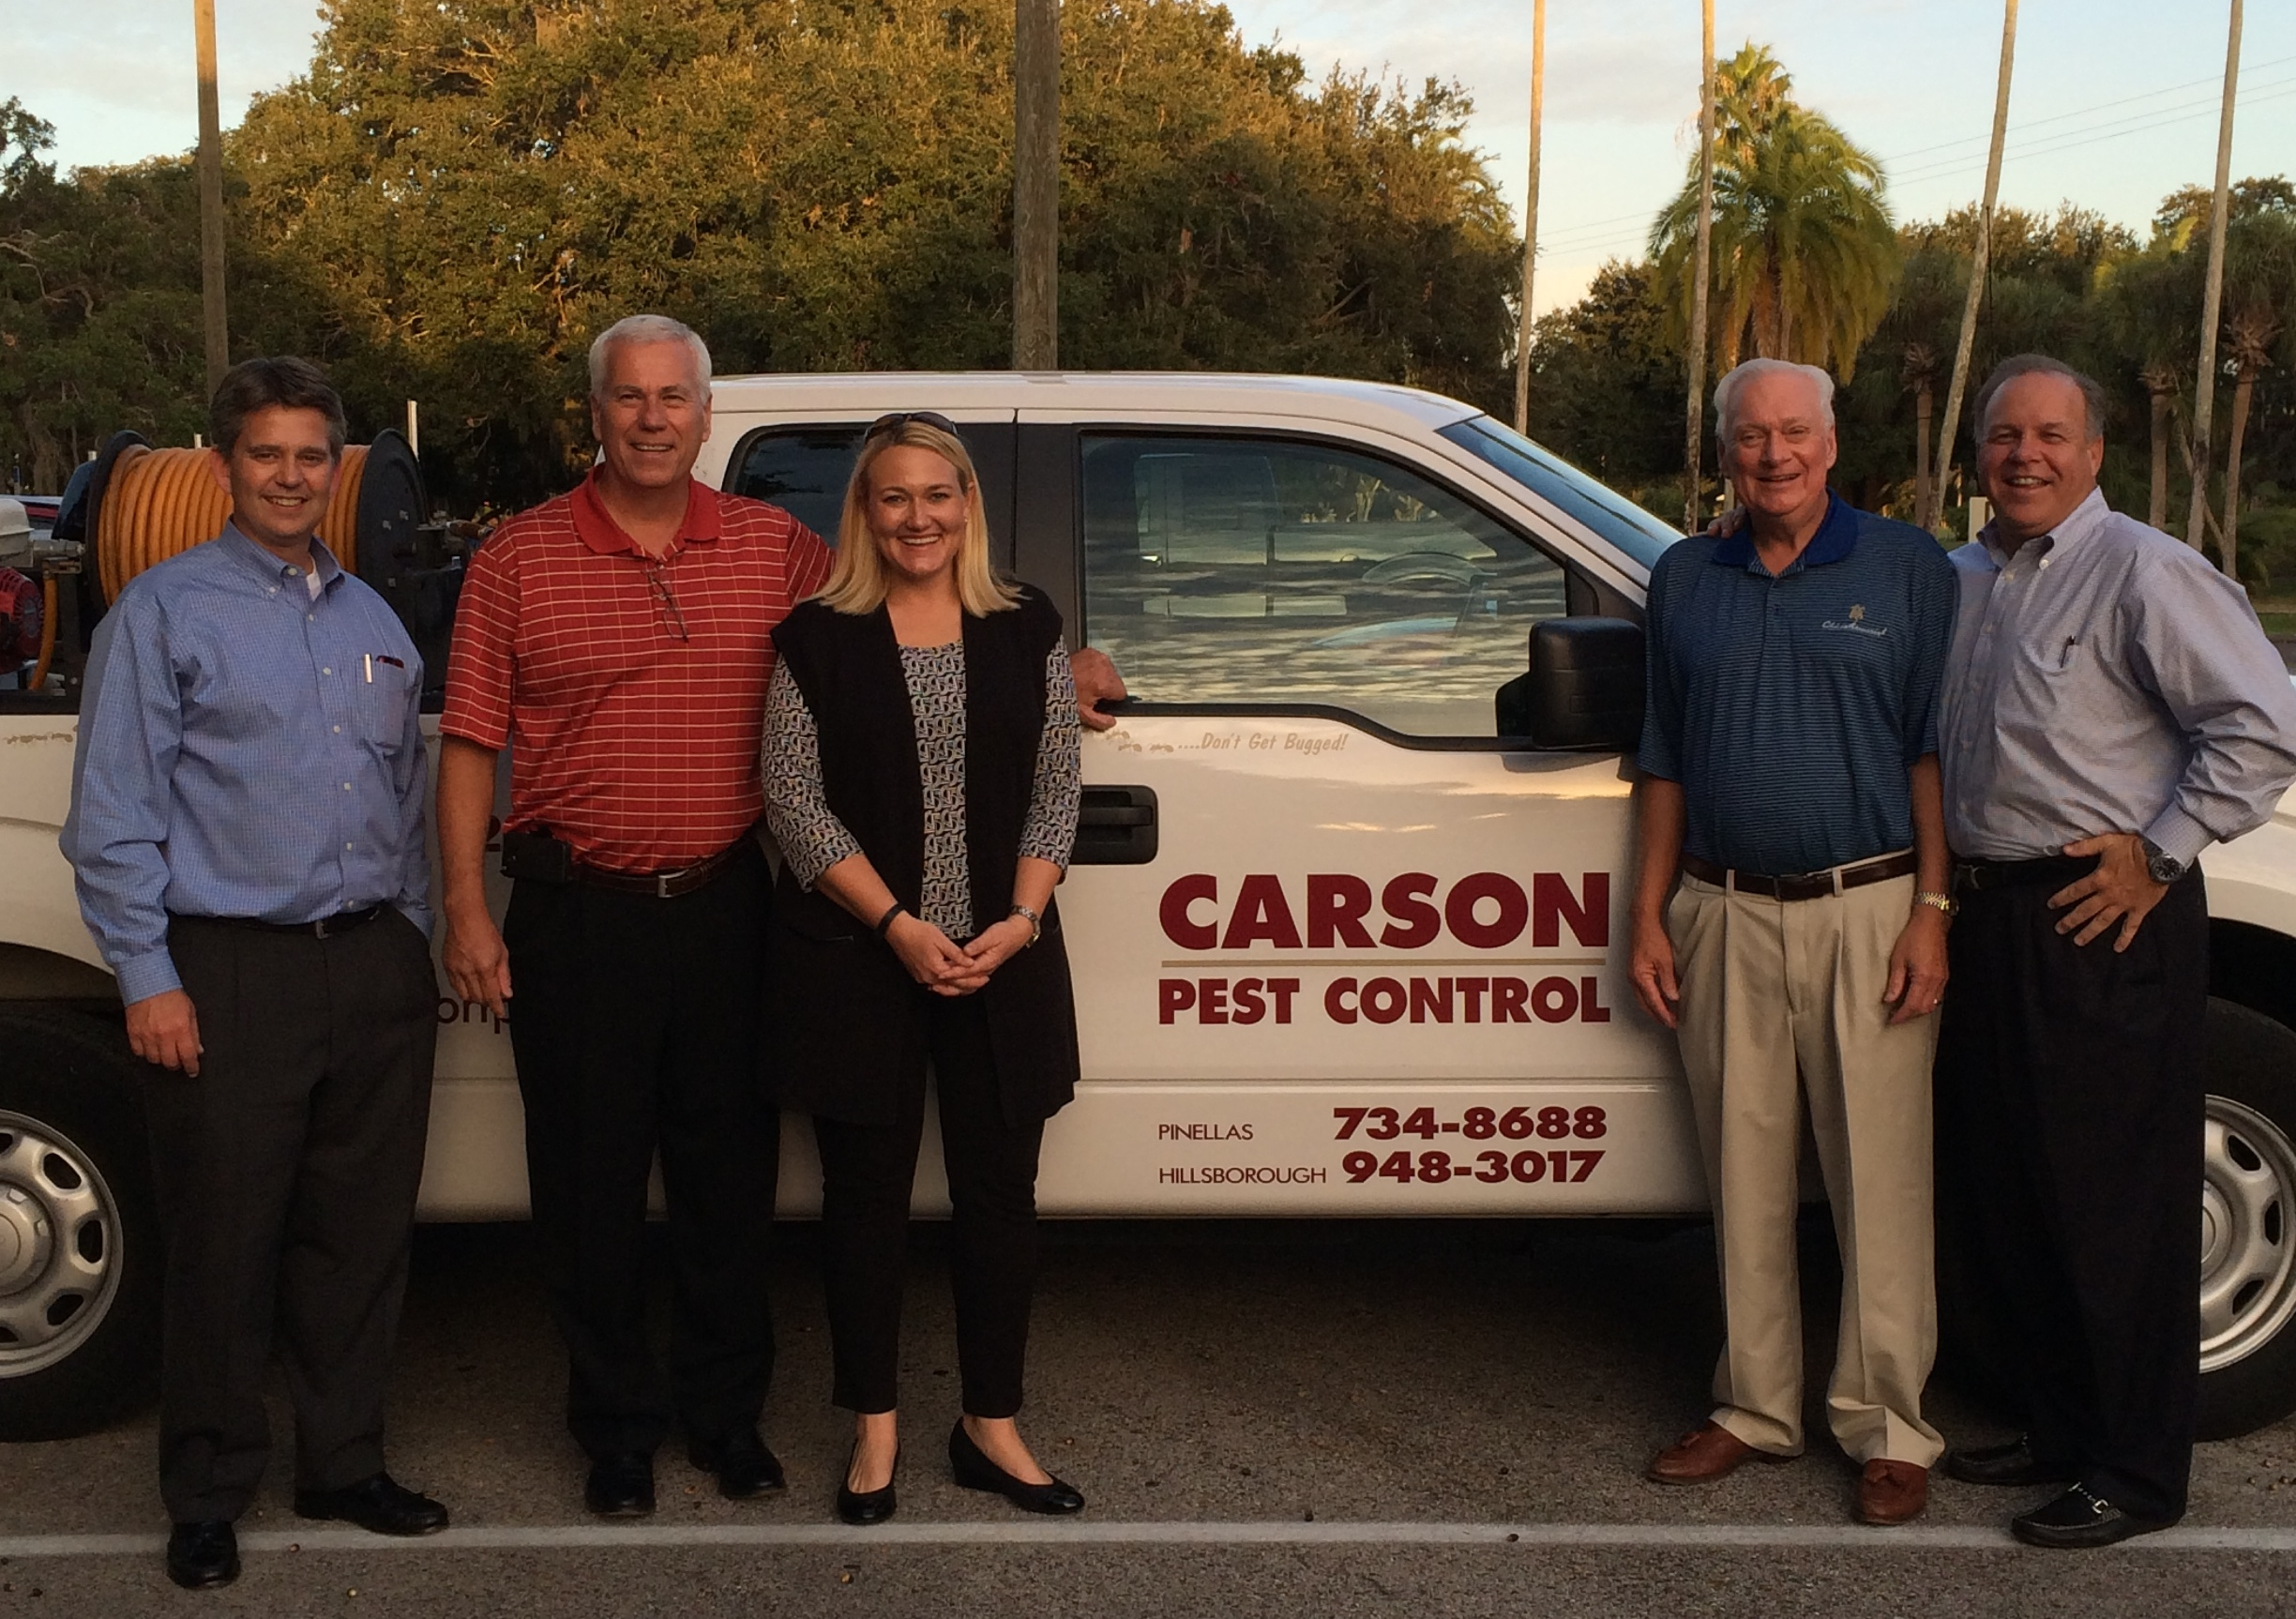 Arrow Exterminators Acquires Carson Pest Control